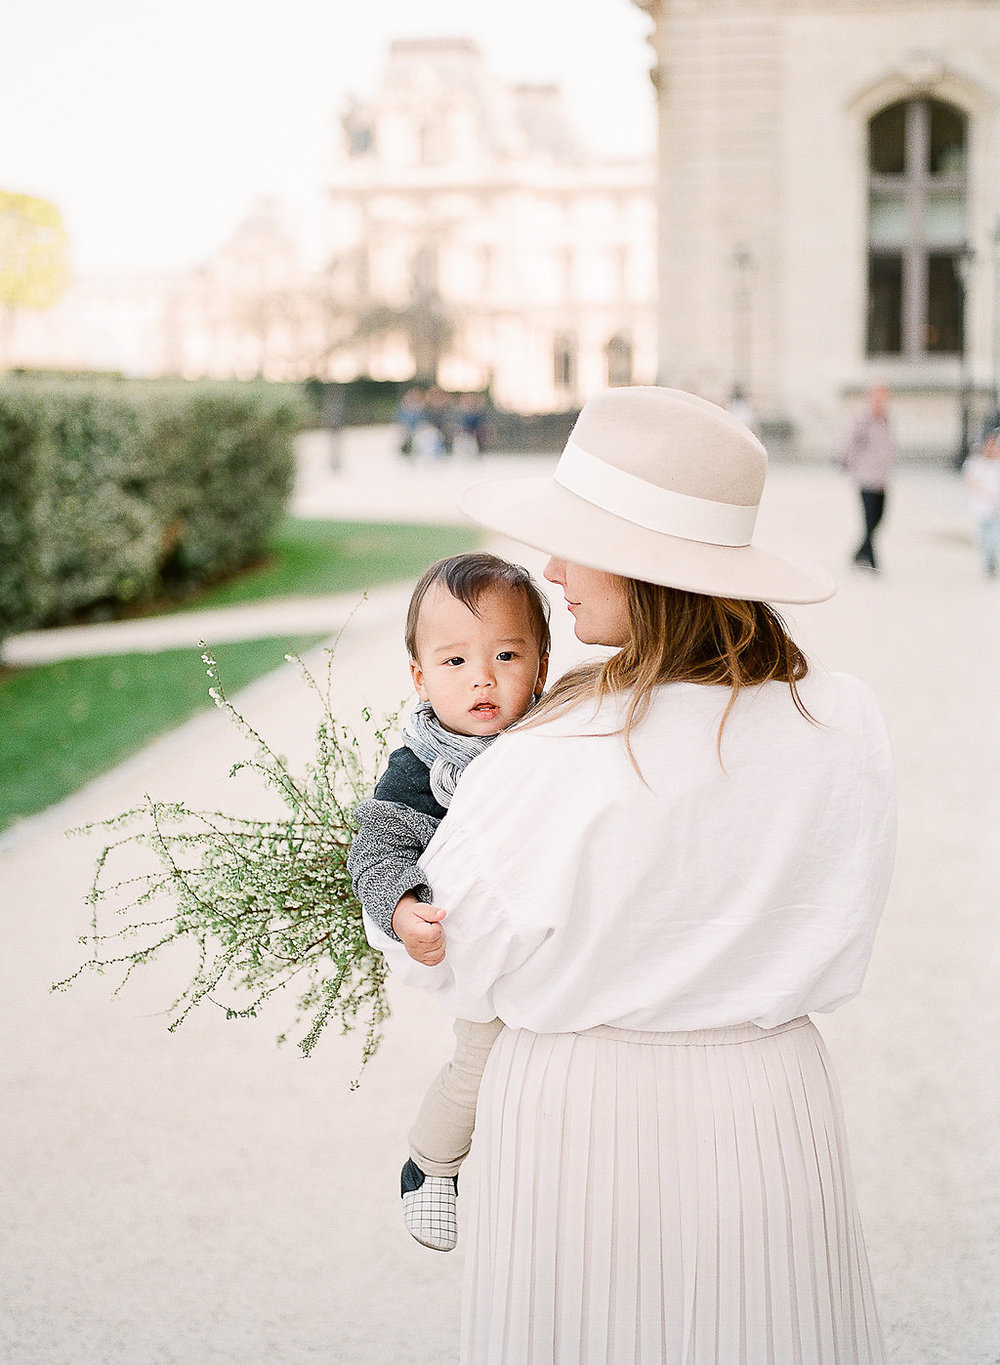 Family photography session in Paris | destination wedding photographer Tanja Kibogo11.JPG